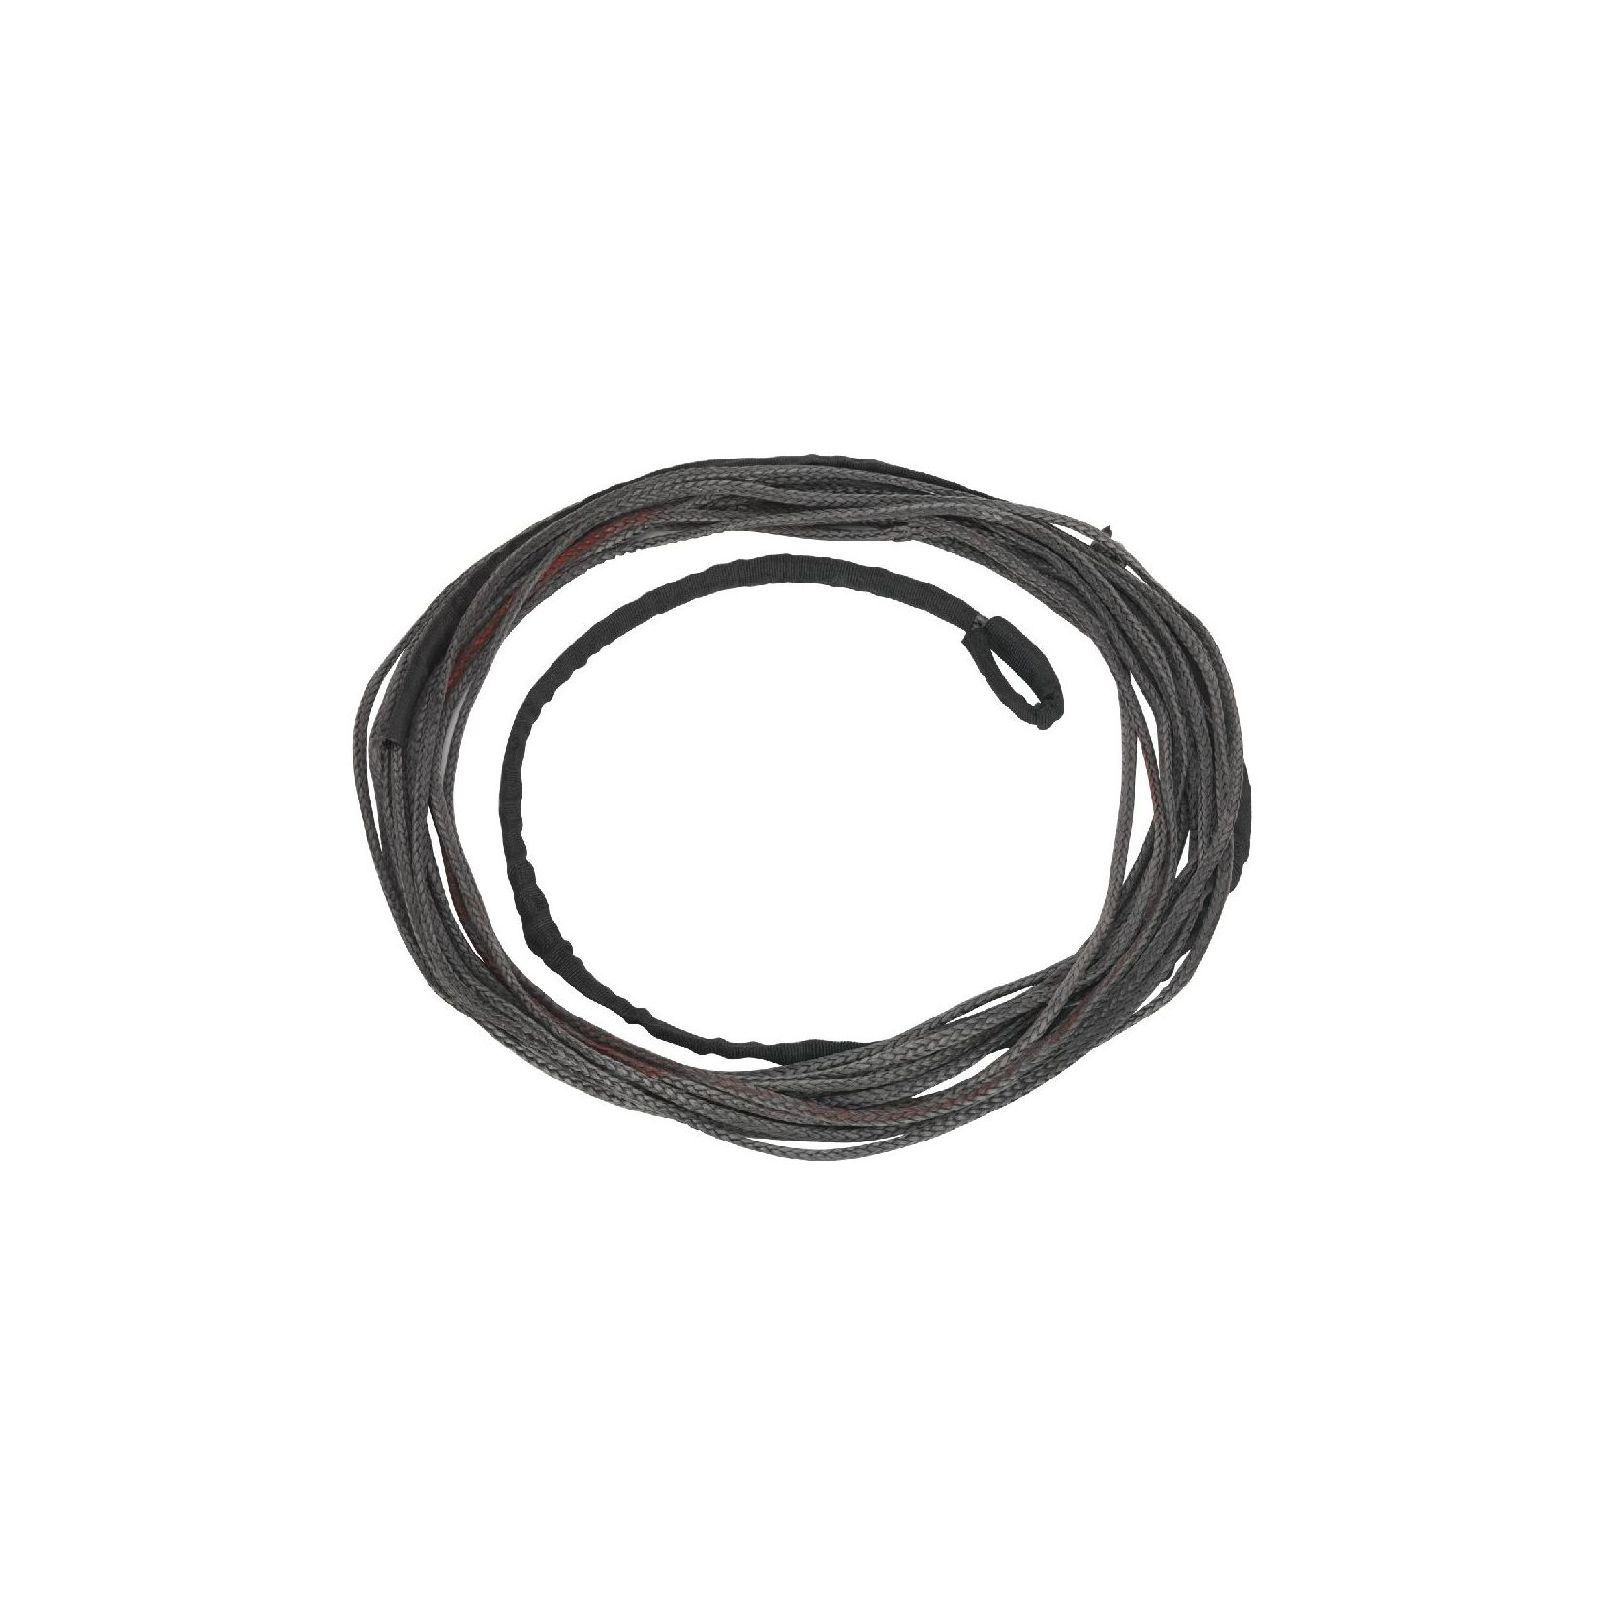 Sealey Dyneema Rope 4 9mm X 15 2mtr For Atv Winches